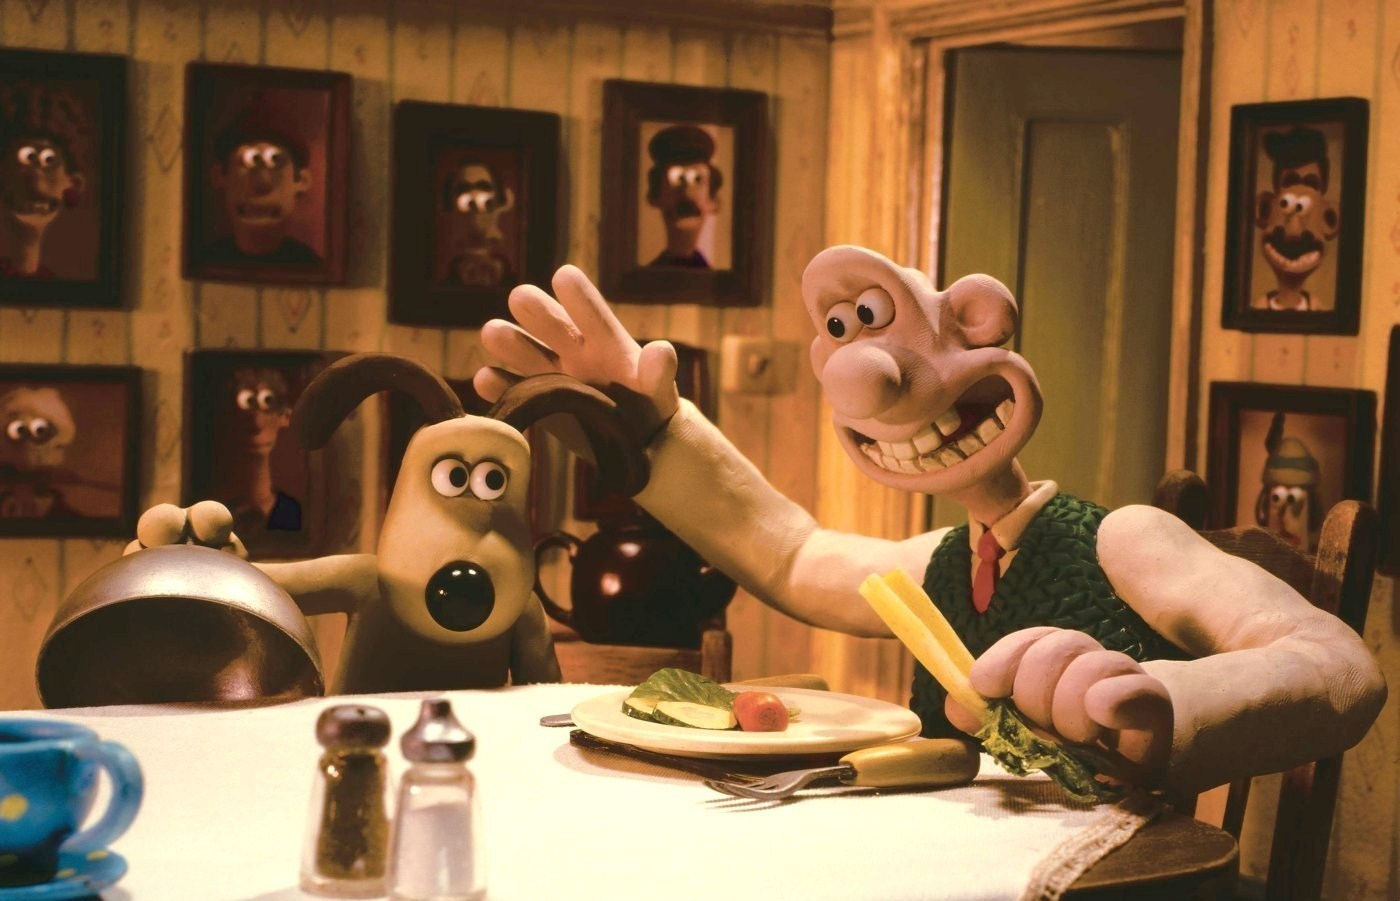 Wallace-Gromit-wallace-and-gromit-the-curse-of-the-were-rabbit